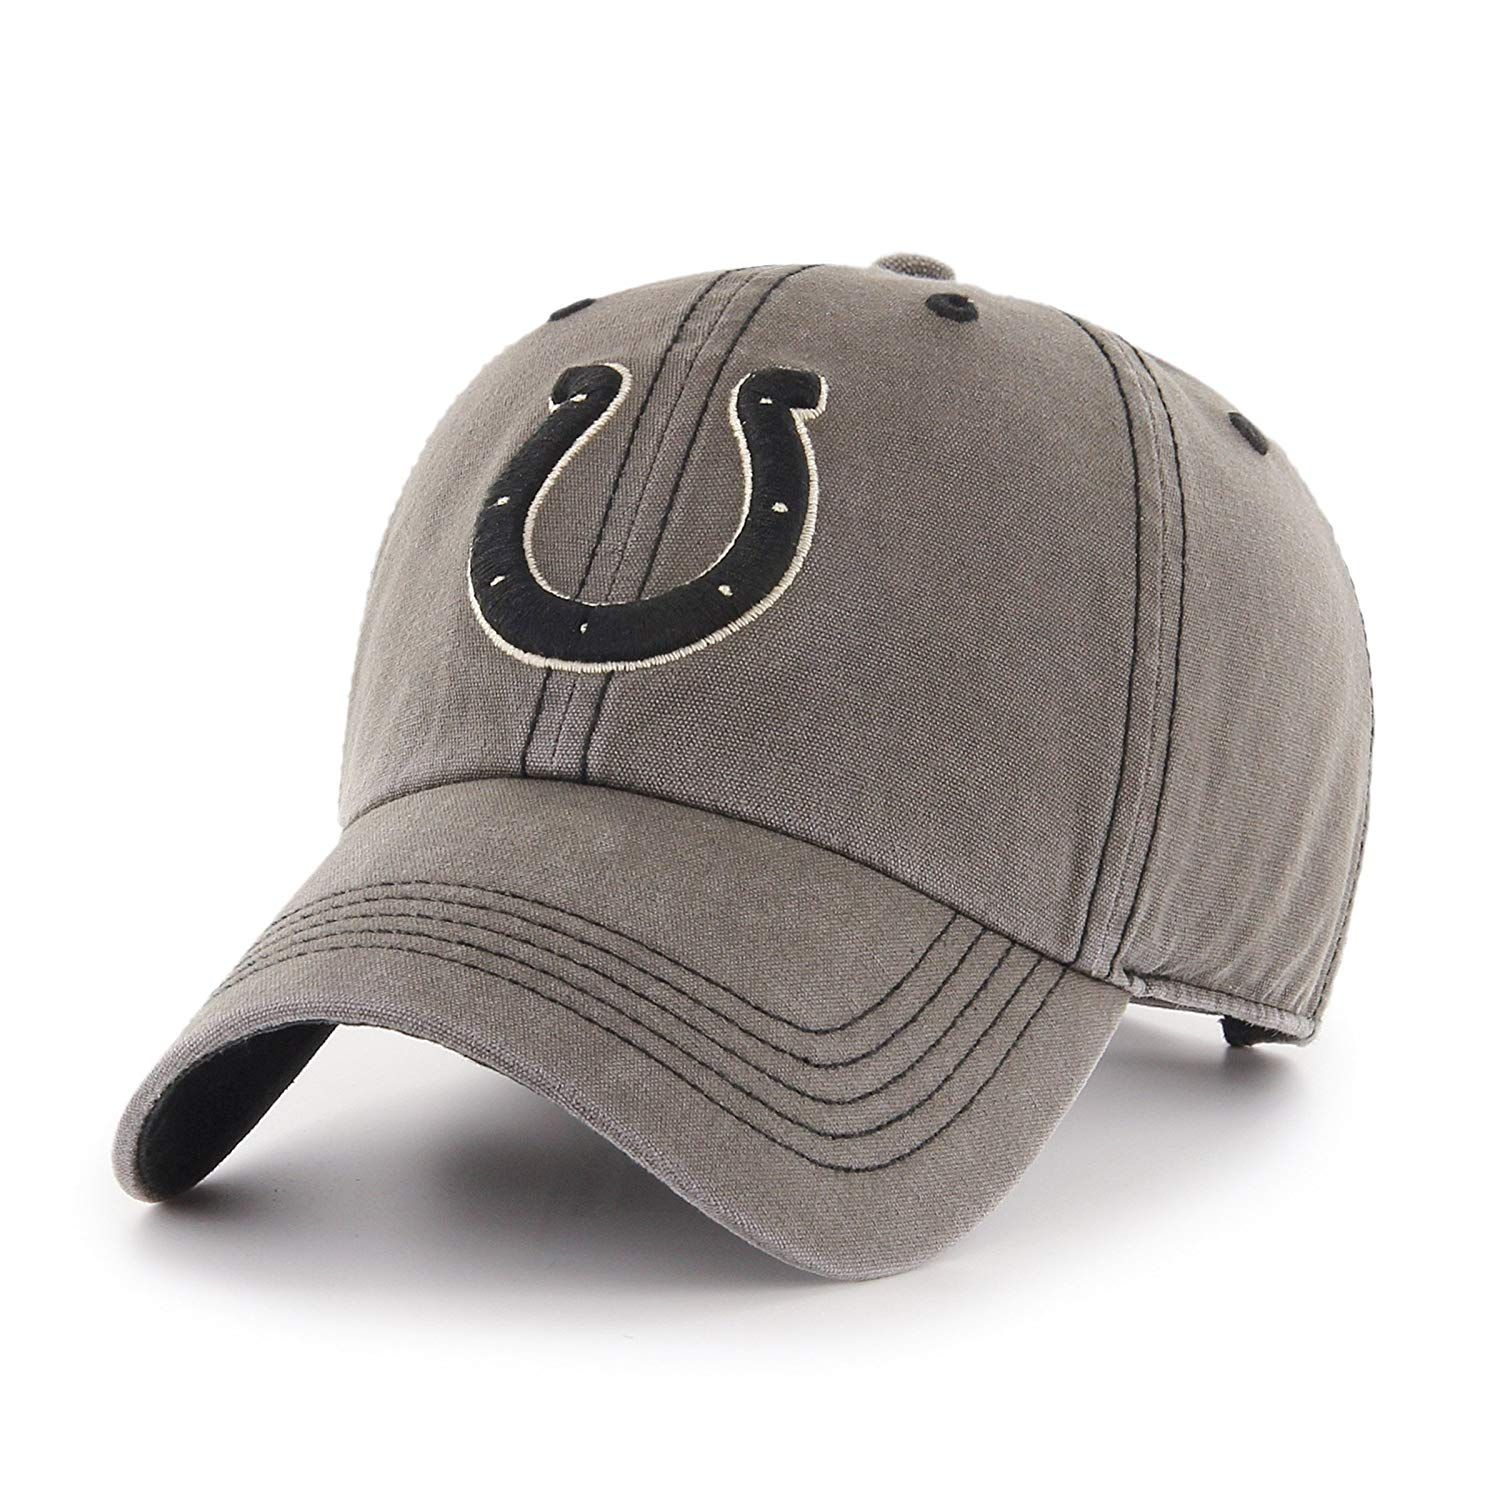 low priced a593d 40533 NFL Indianapolis Colts Woodford OTS Challenger Adjustable Hat,  23.27    Indianapolis Colts Caps   Hats   Hats, Indianapolis Colts, Baseball hats